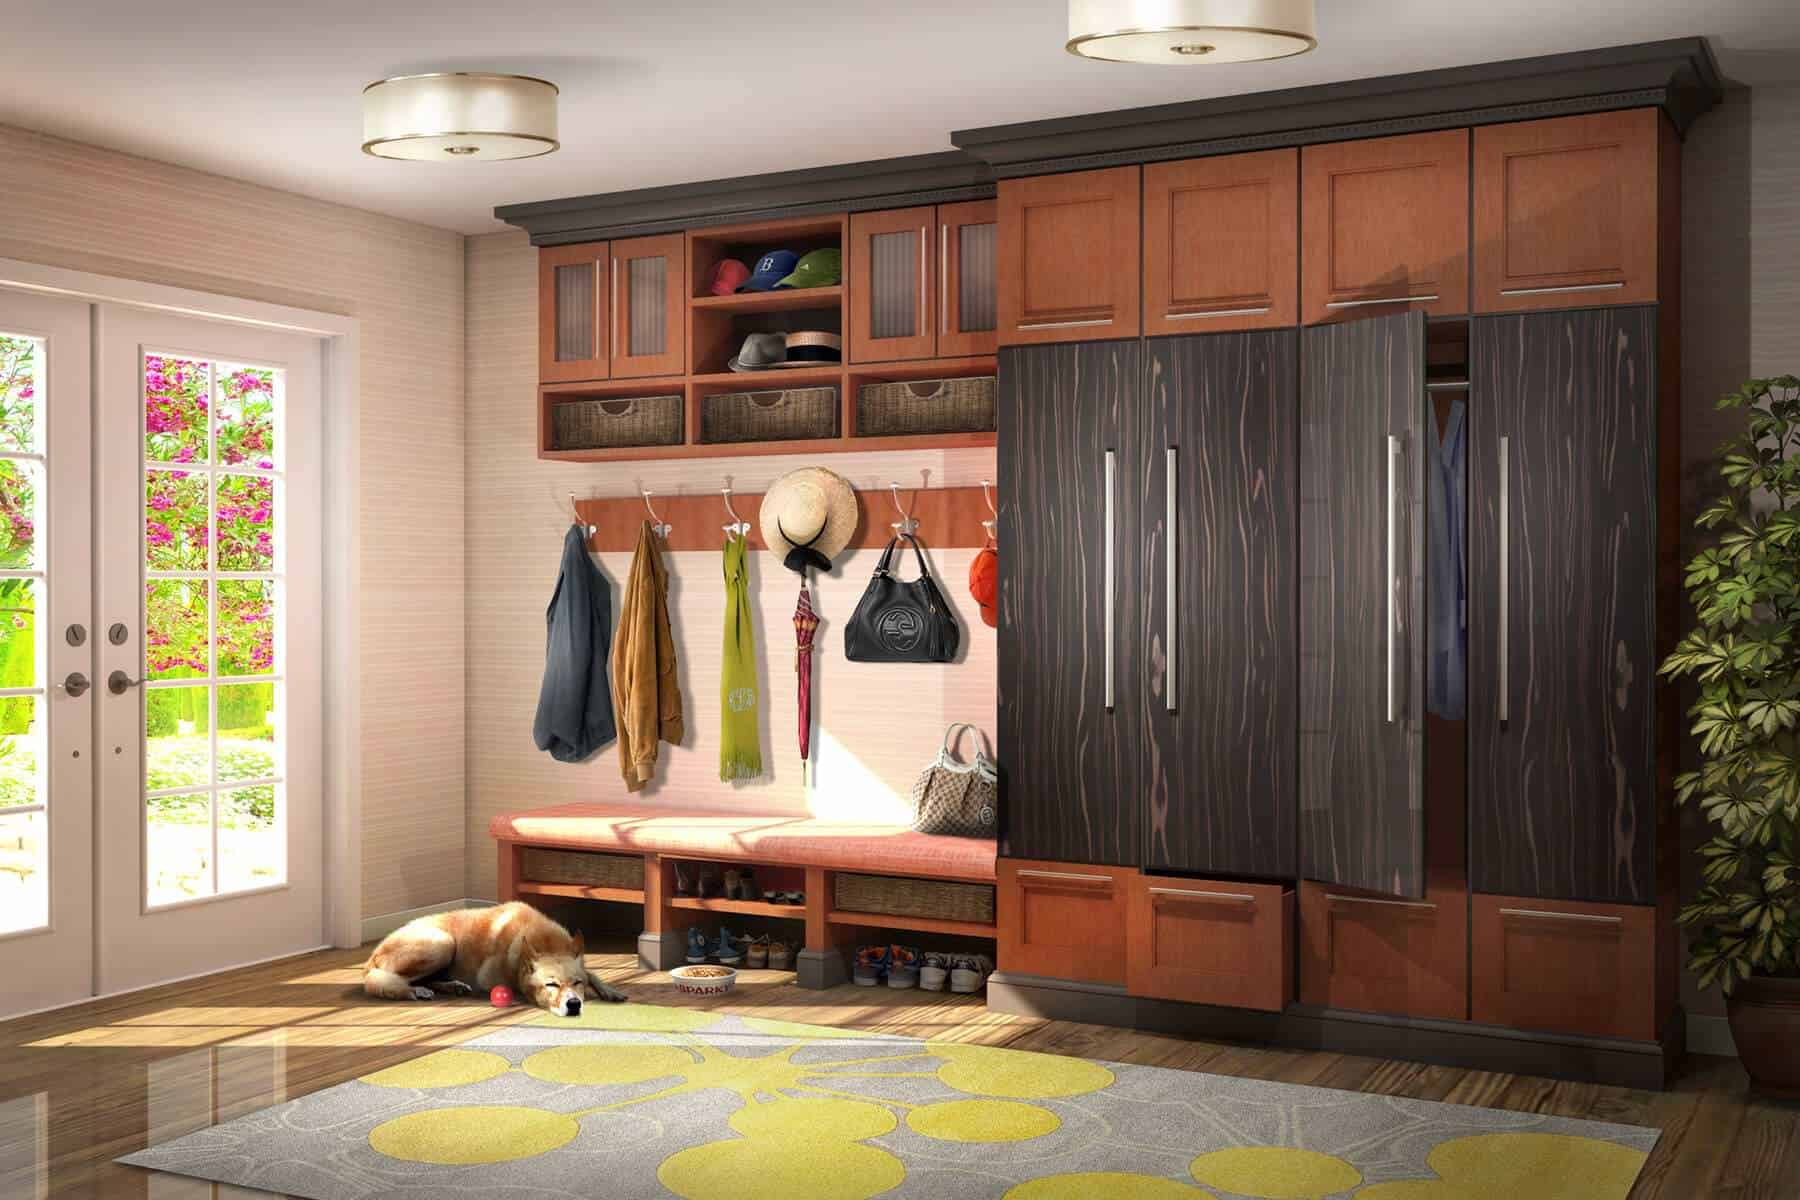 Design Mud Room 85 fantastic mudroom ideas for 2017 example of locker with doors